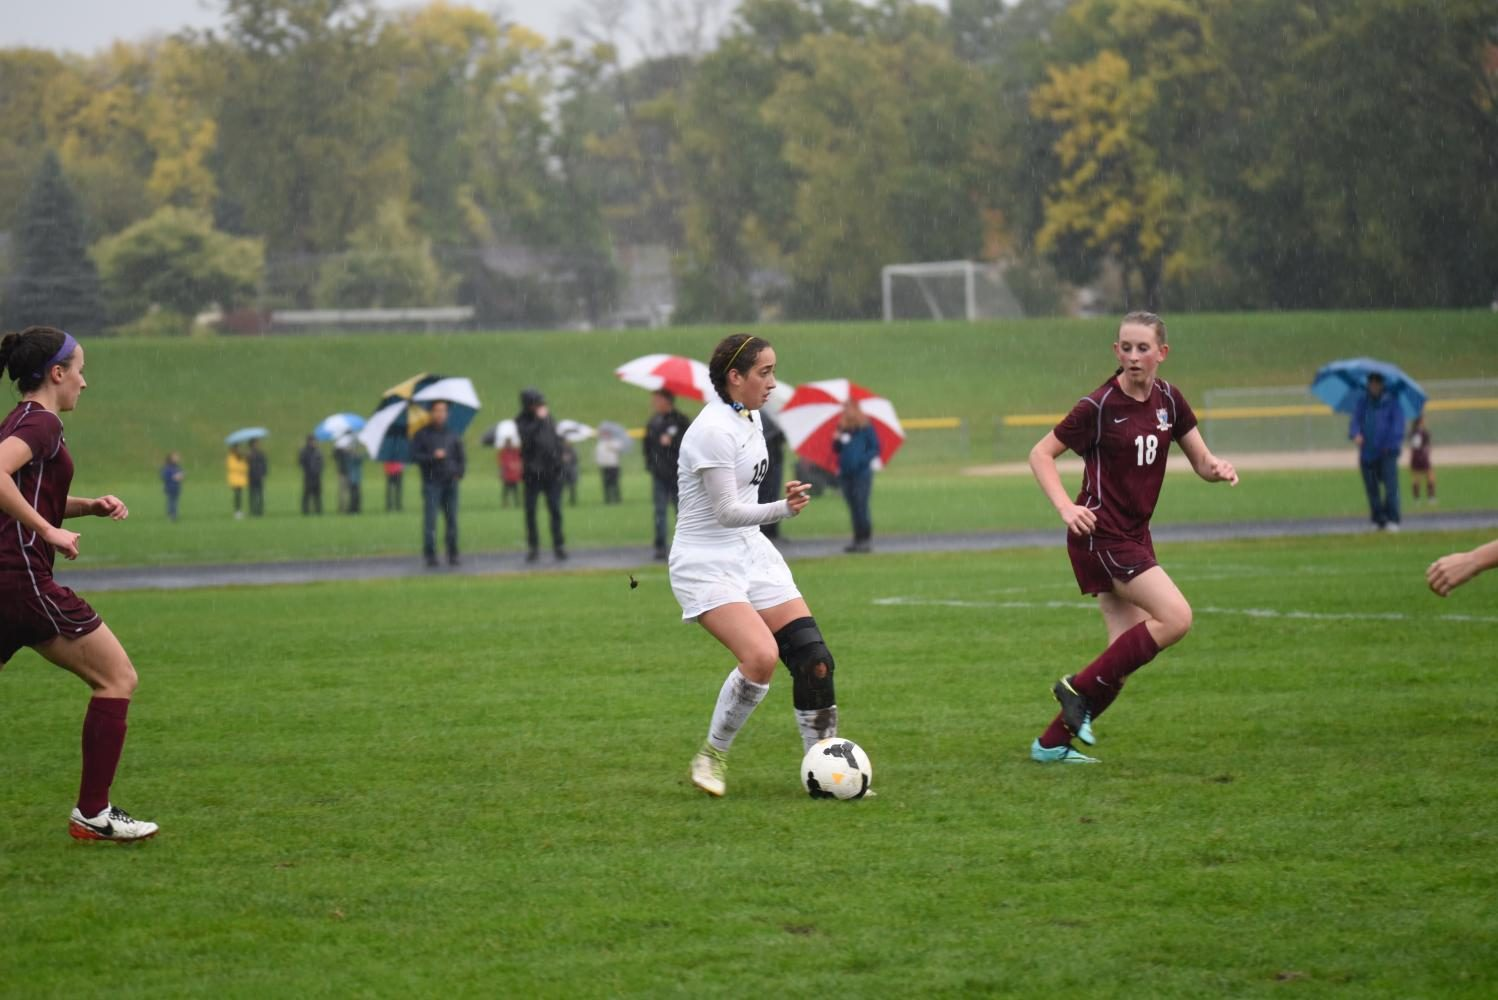 Senior Dina Moradian looks to find a pass to a teammate.